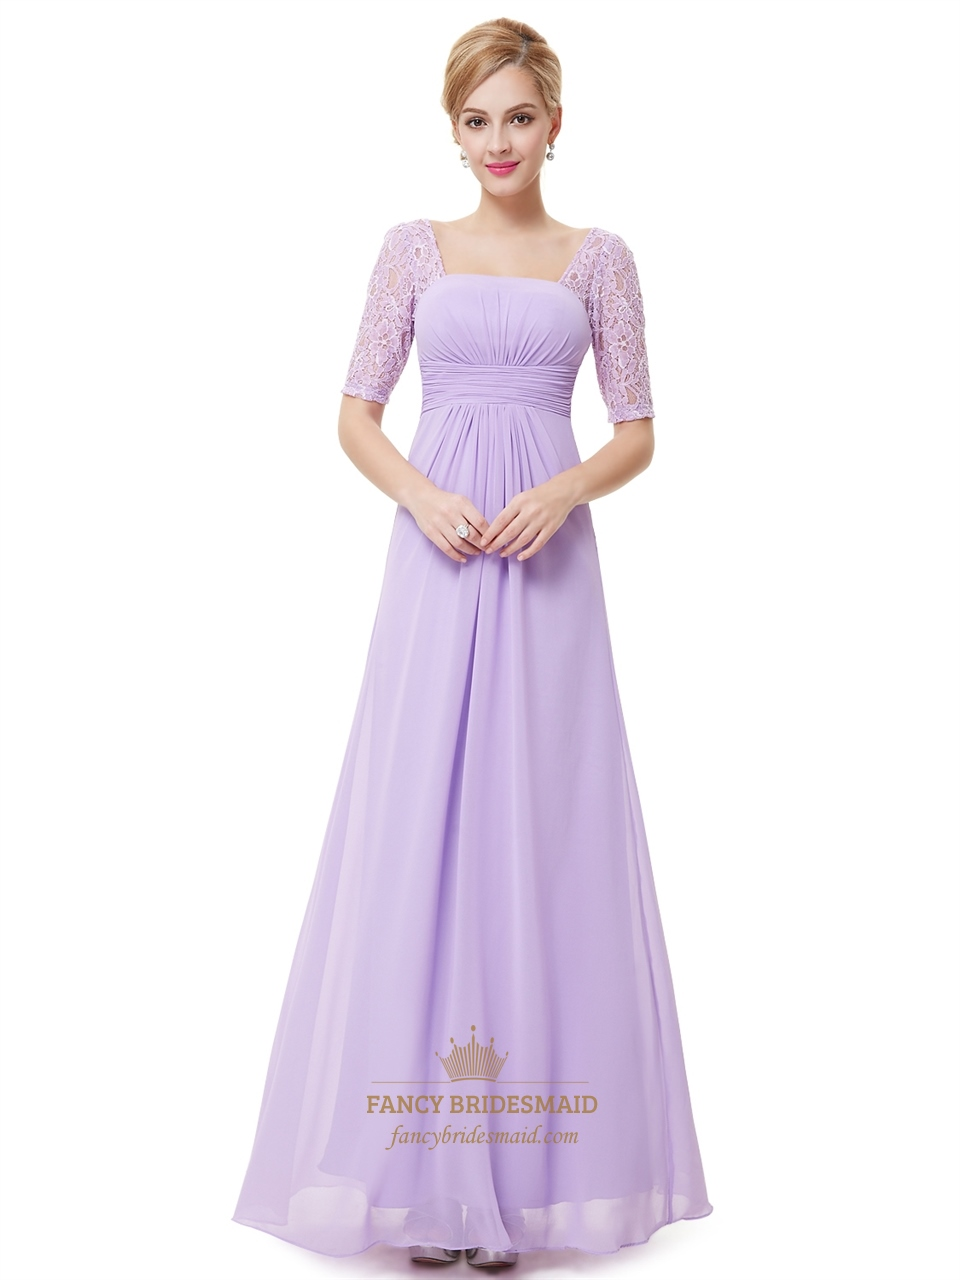 Lilac chiffon floor length bridesmaid dress with lace half sleeves lilac chiffon floor length bridesmaid dress with lace half sleeves ombrellifo Images